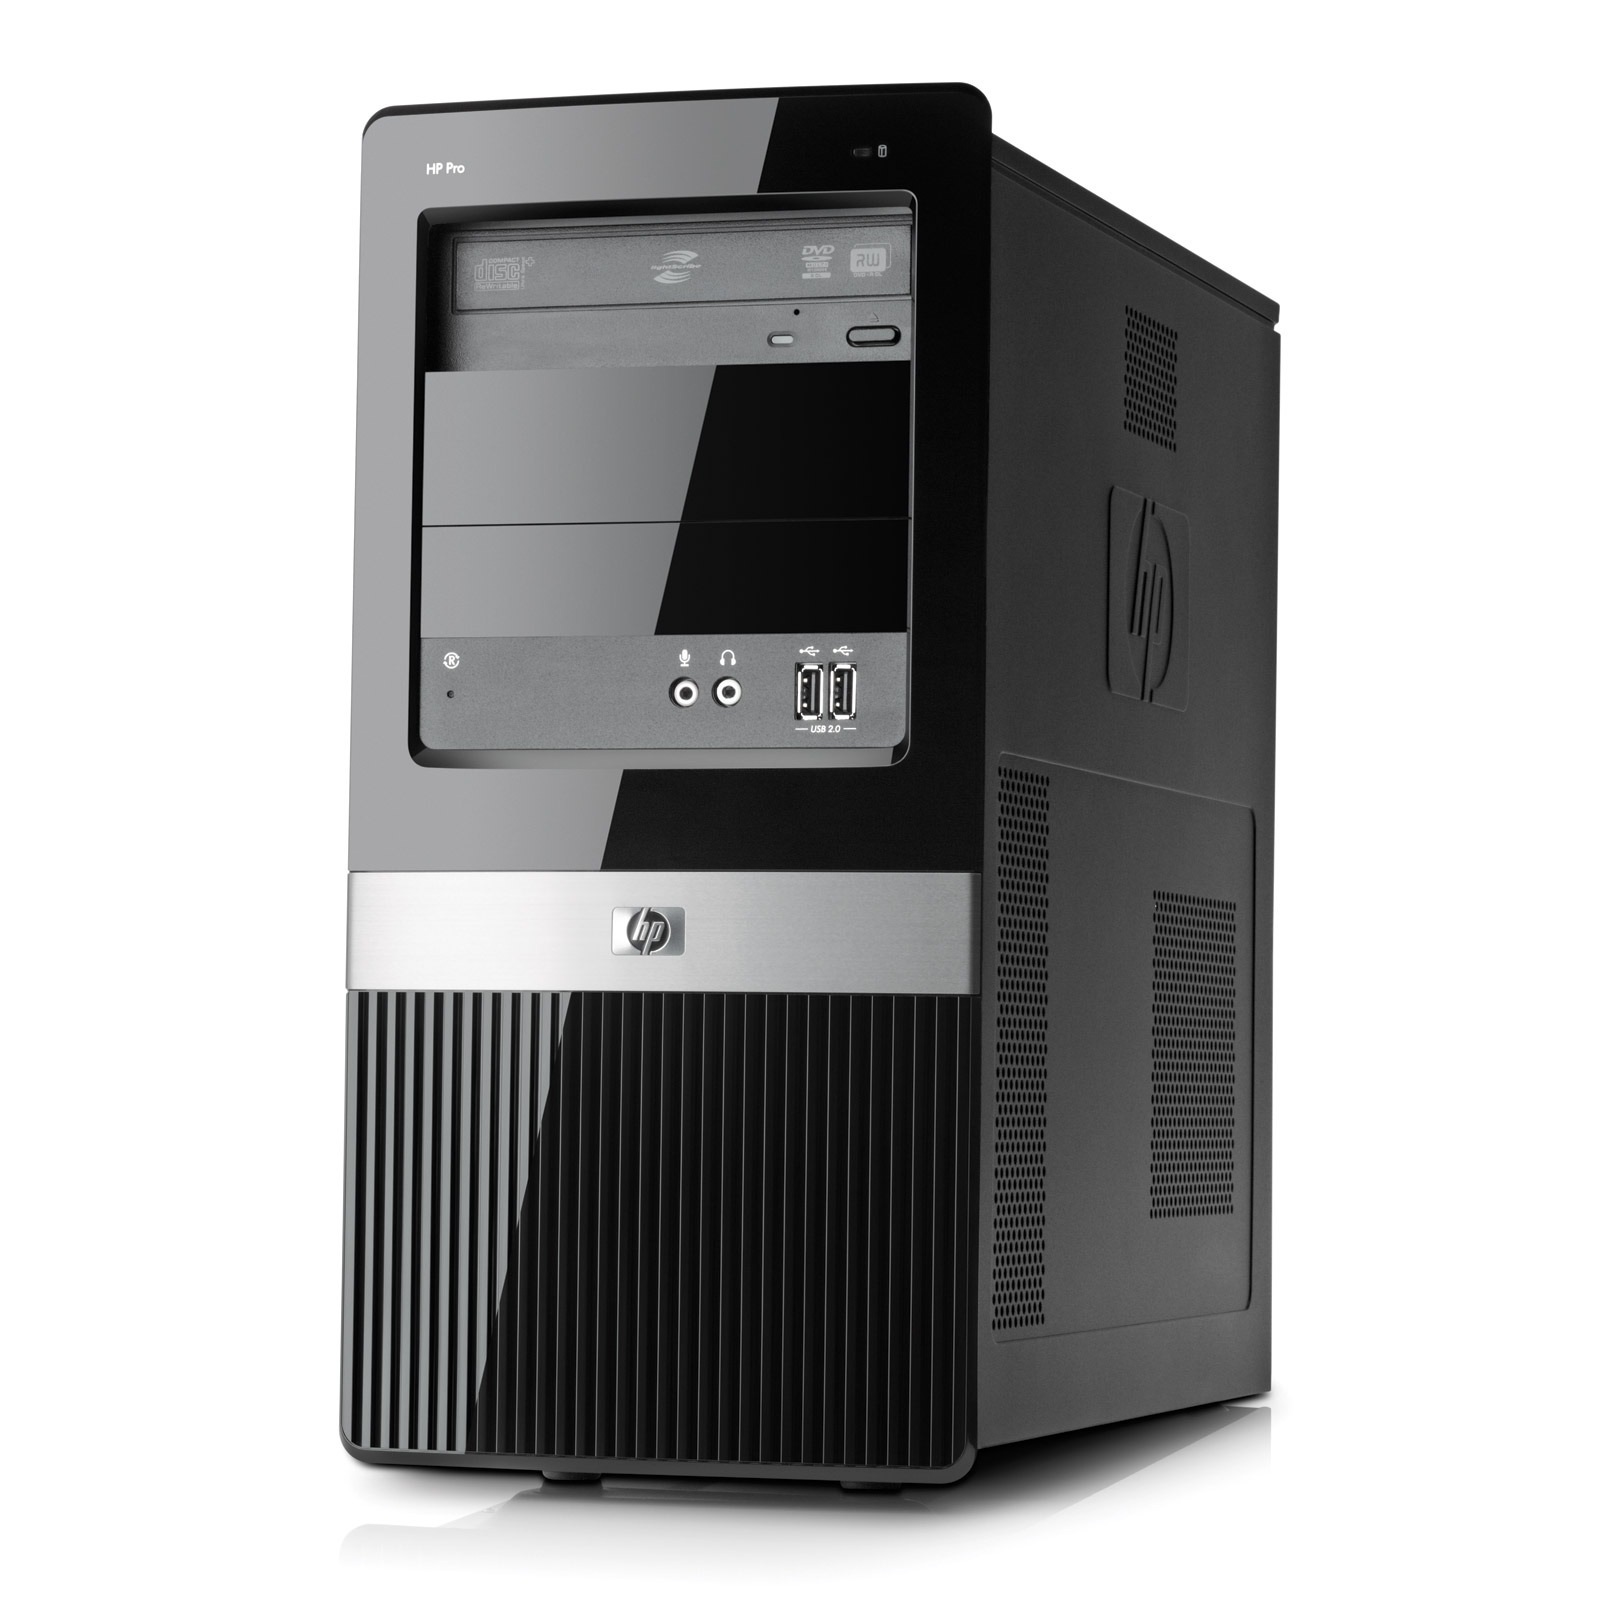 Hp pro 3120 wu146ea pc de bureau hp sur ldlc - Ordinateur de bureau windows 7 pro ...